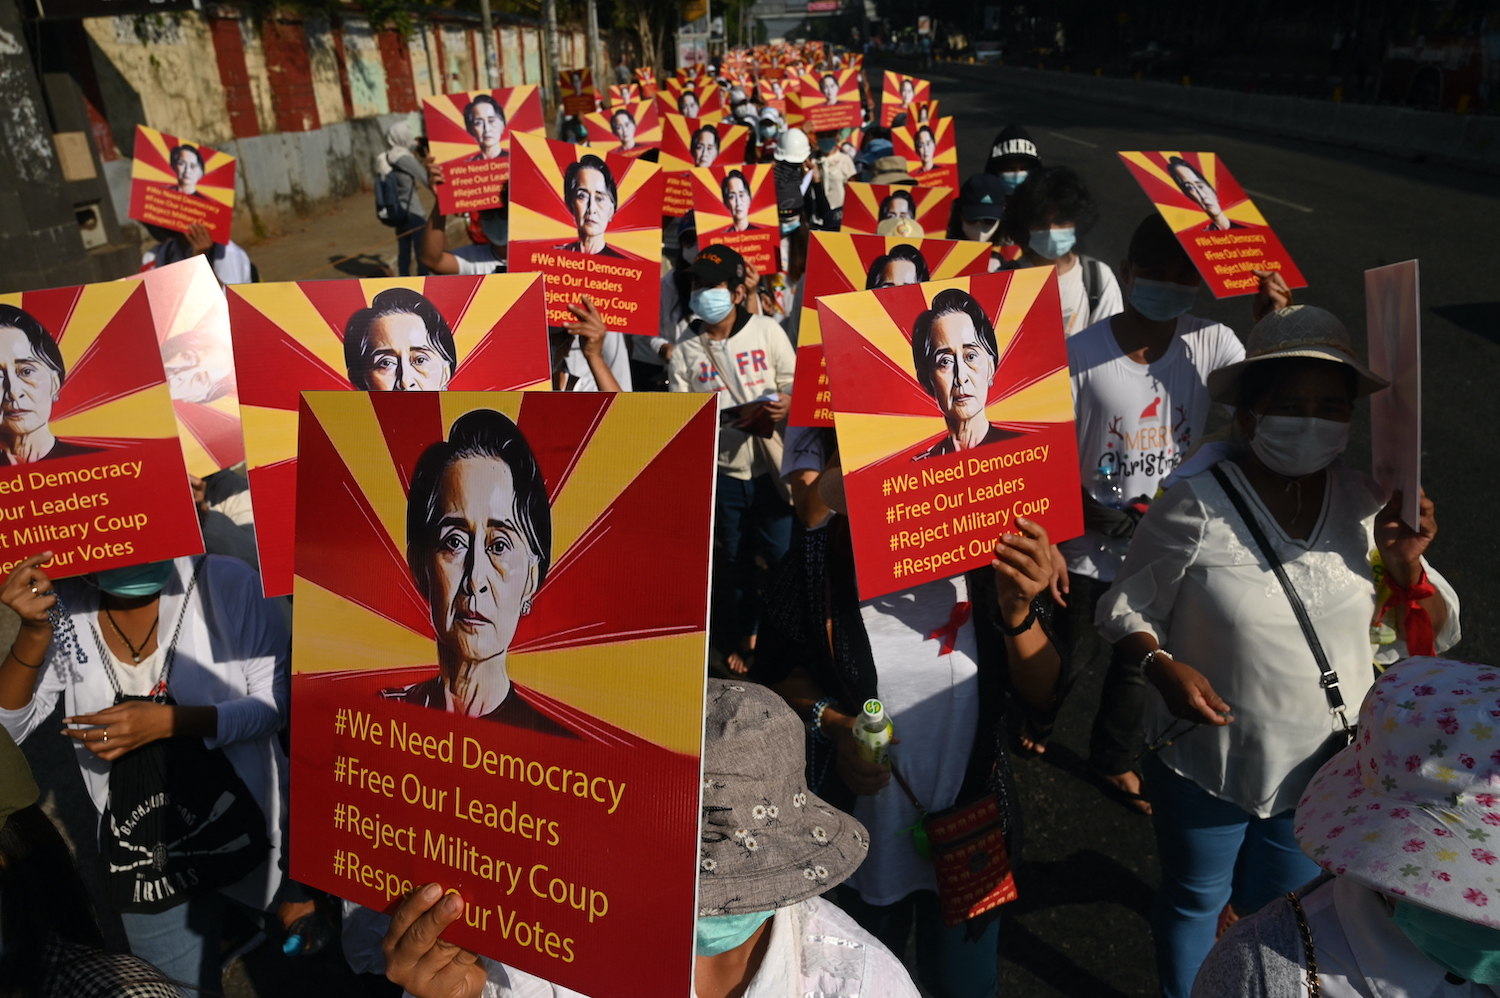 Protesters demonstrate against the military coup in Yangon on 14 February 2021.